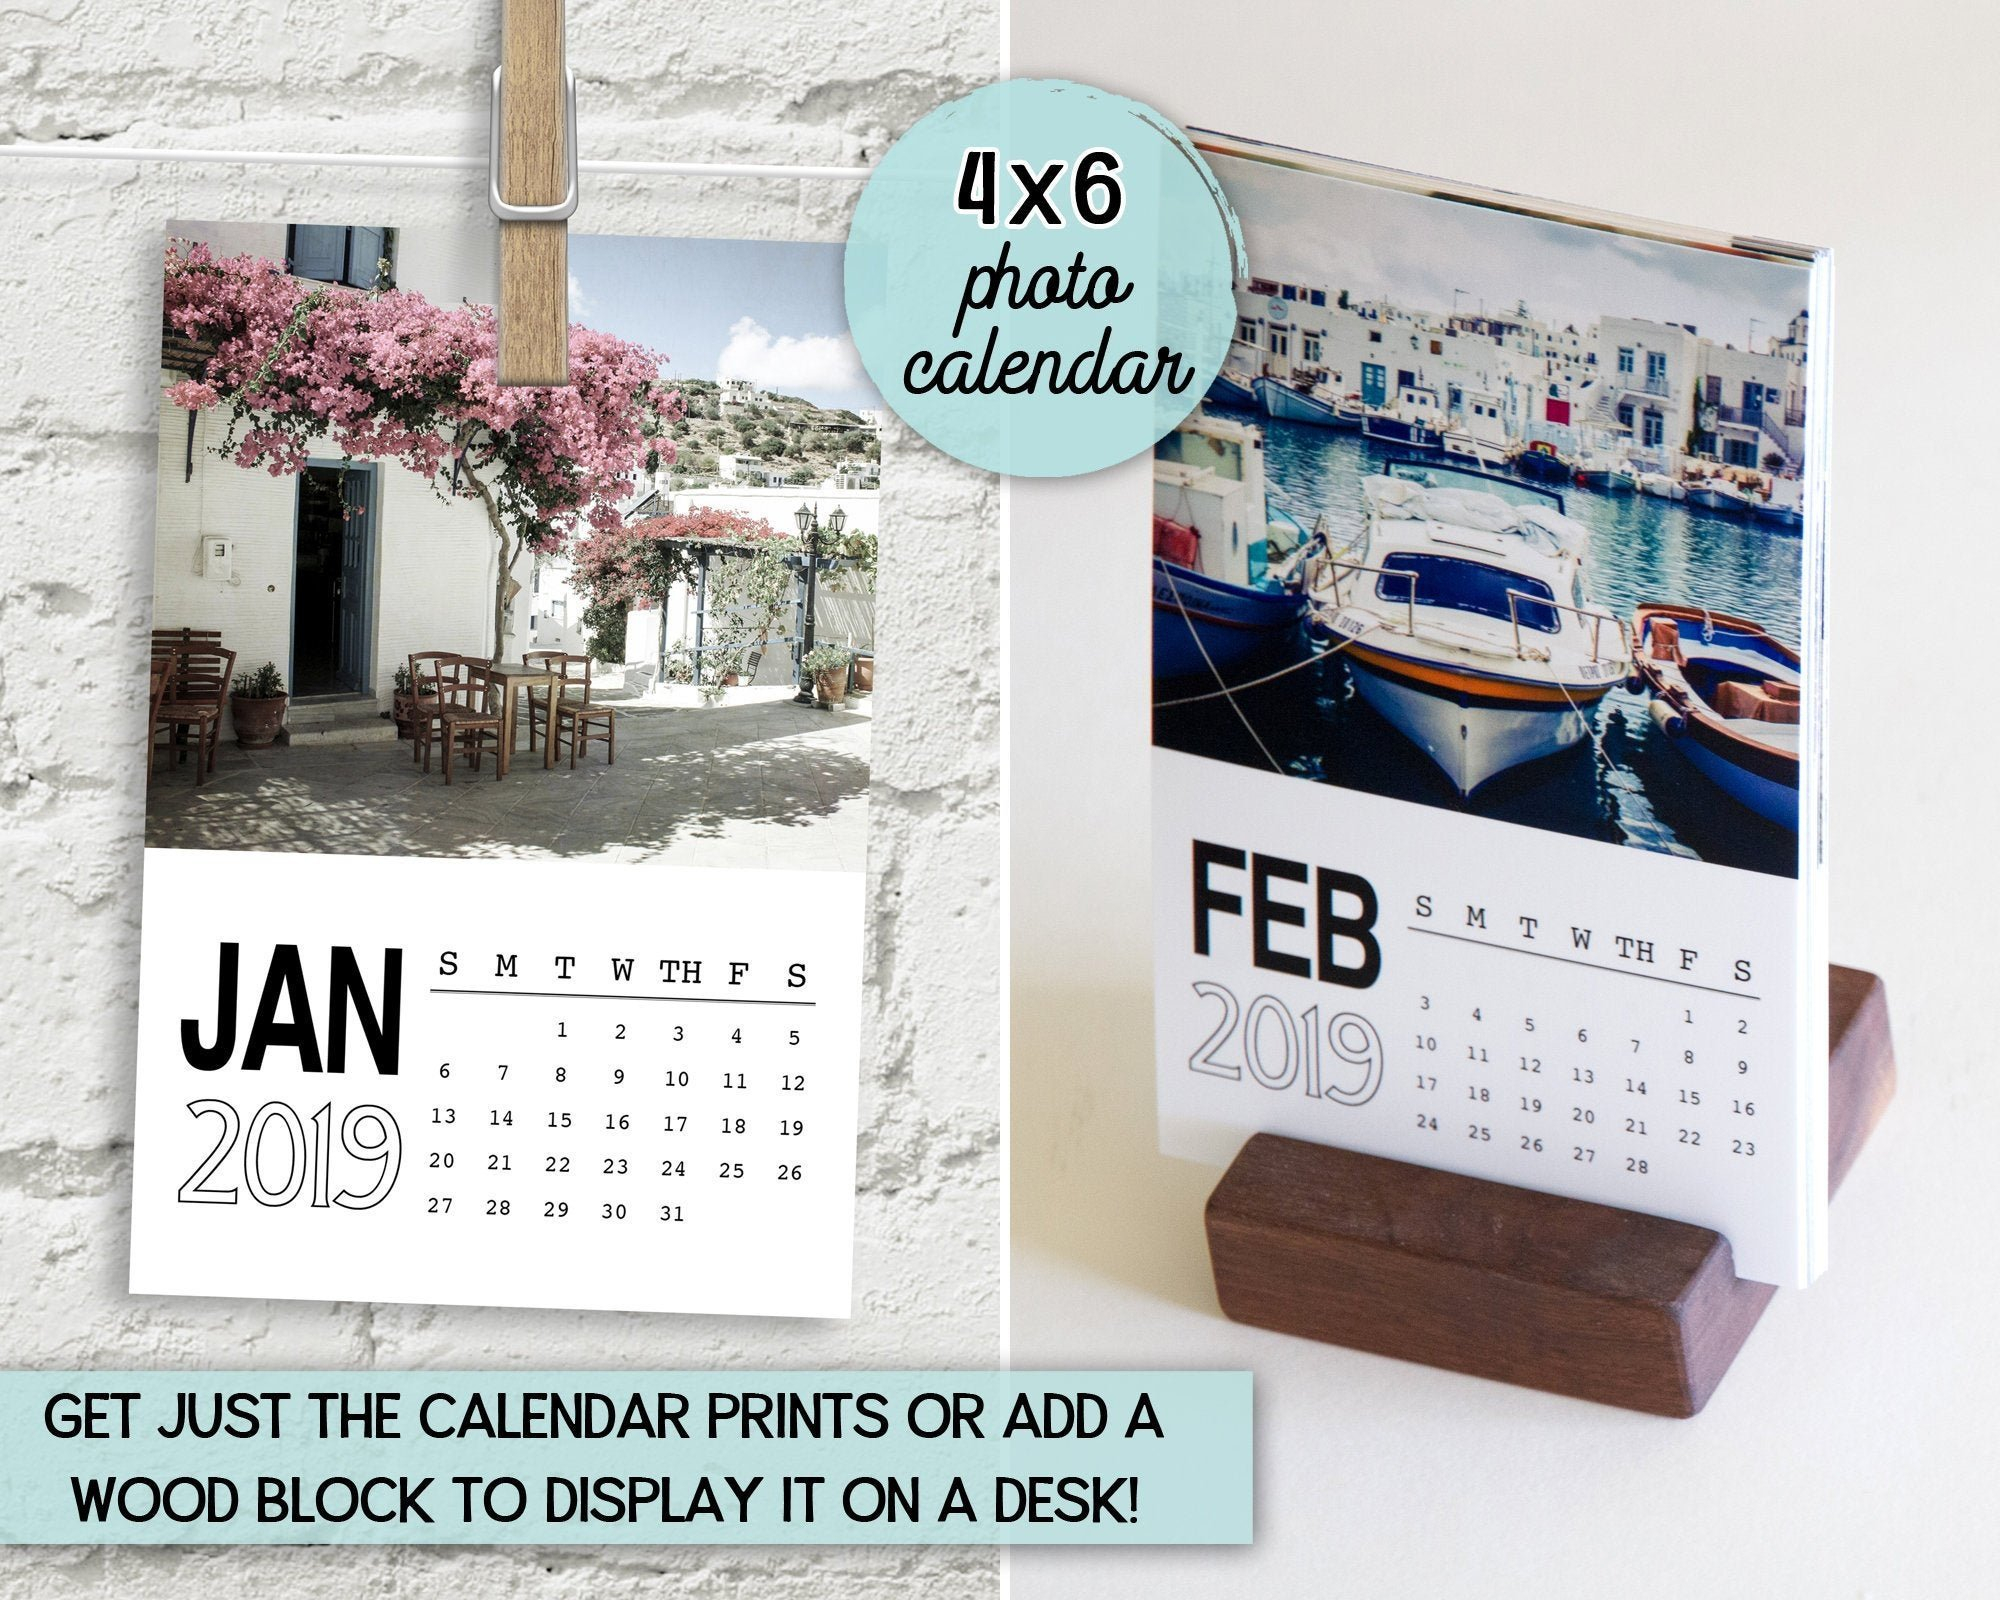 Photo Calendar 2019 4X6 Calendar Travel Photography | Etsy Calendar 2019 Travel